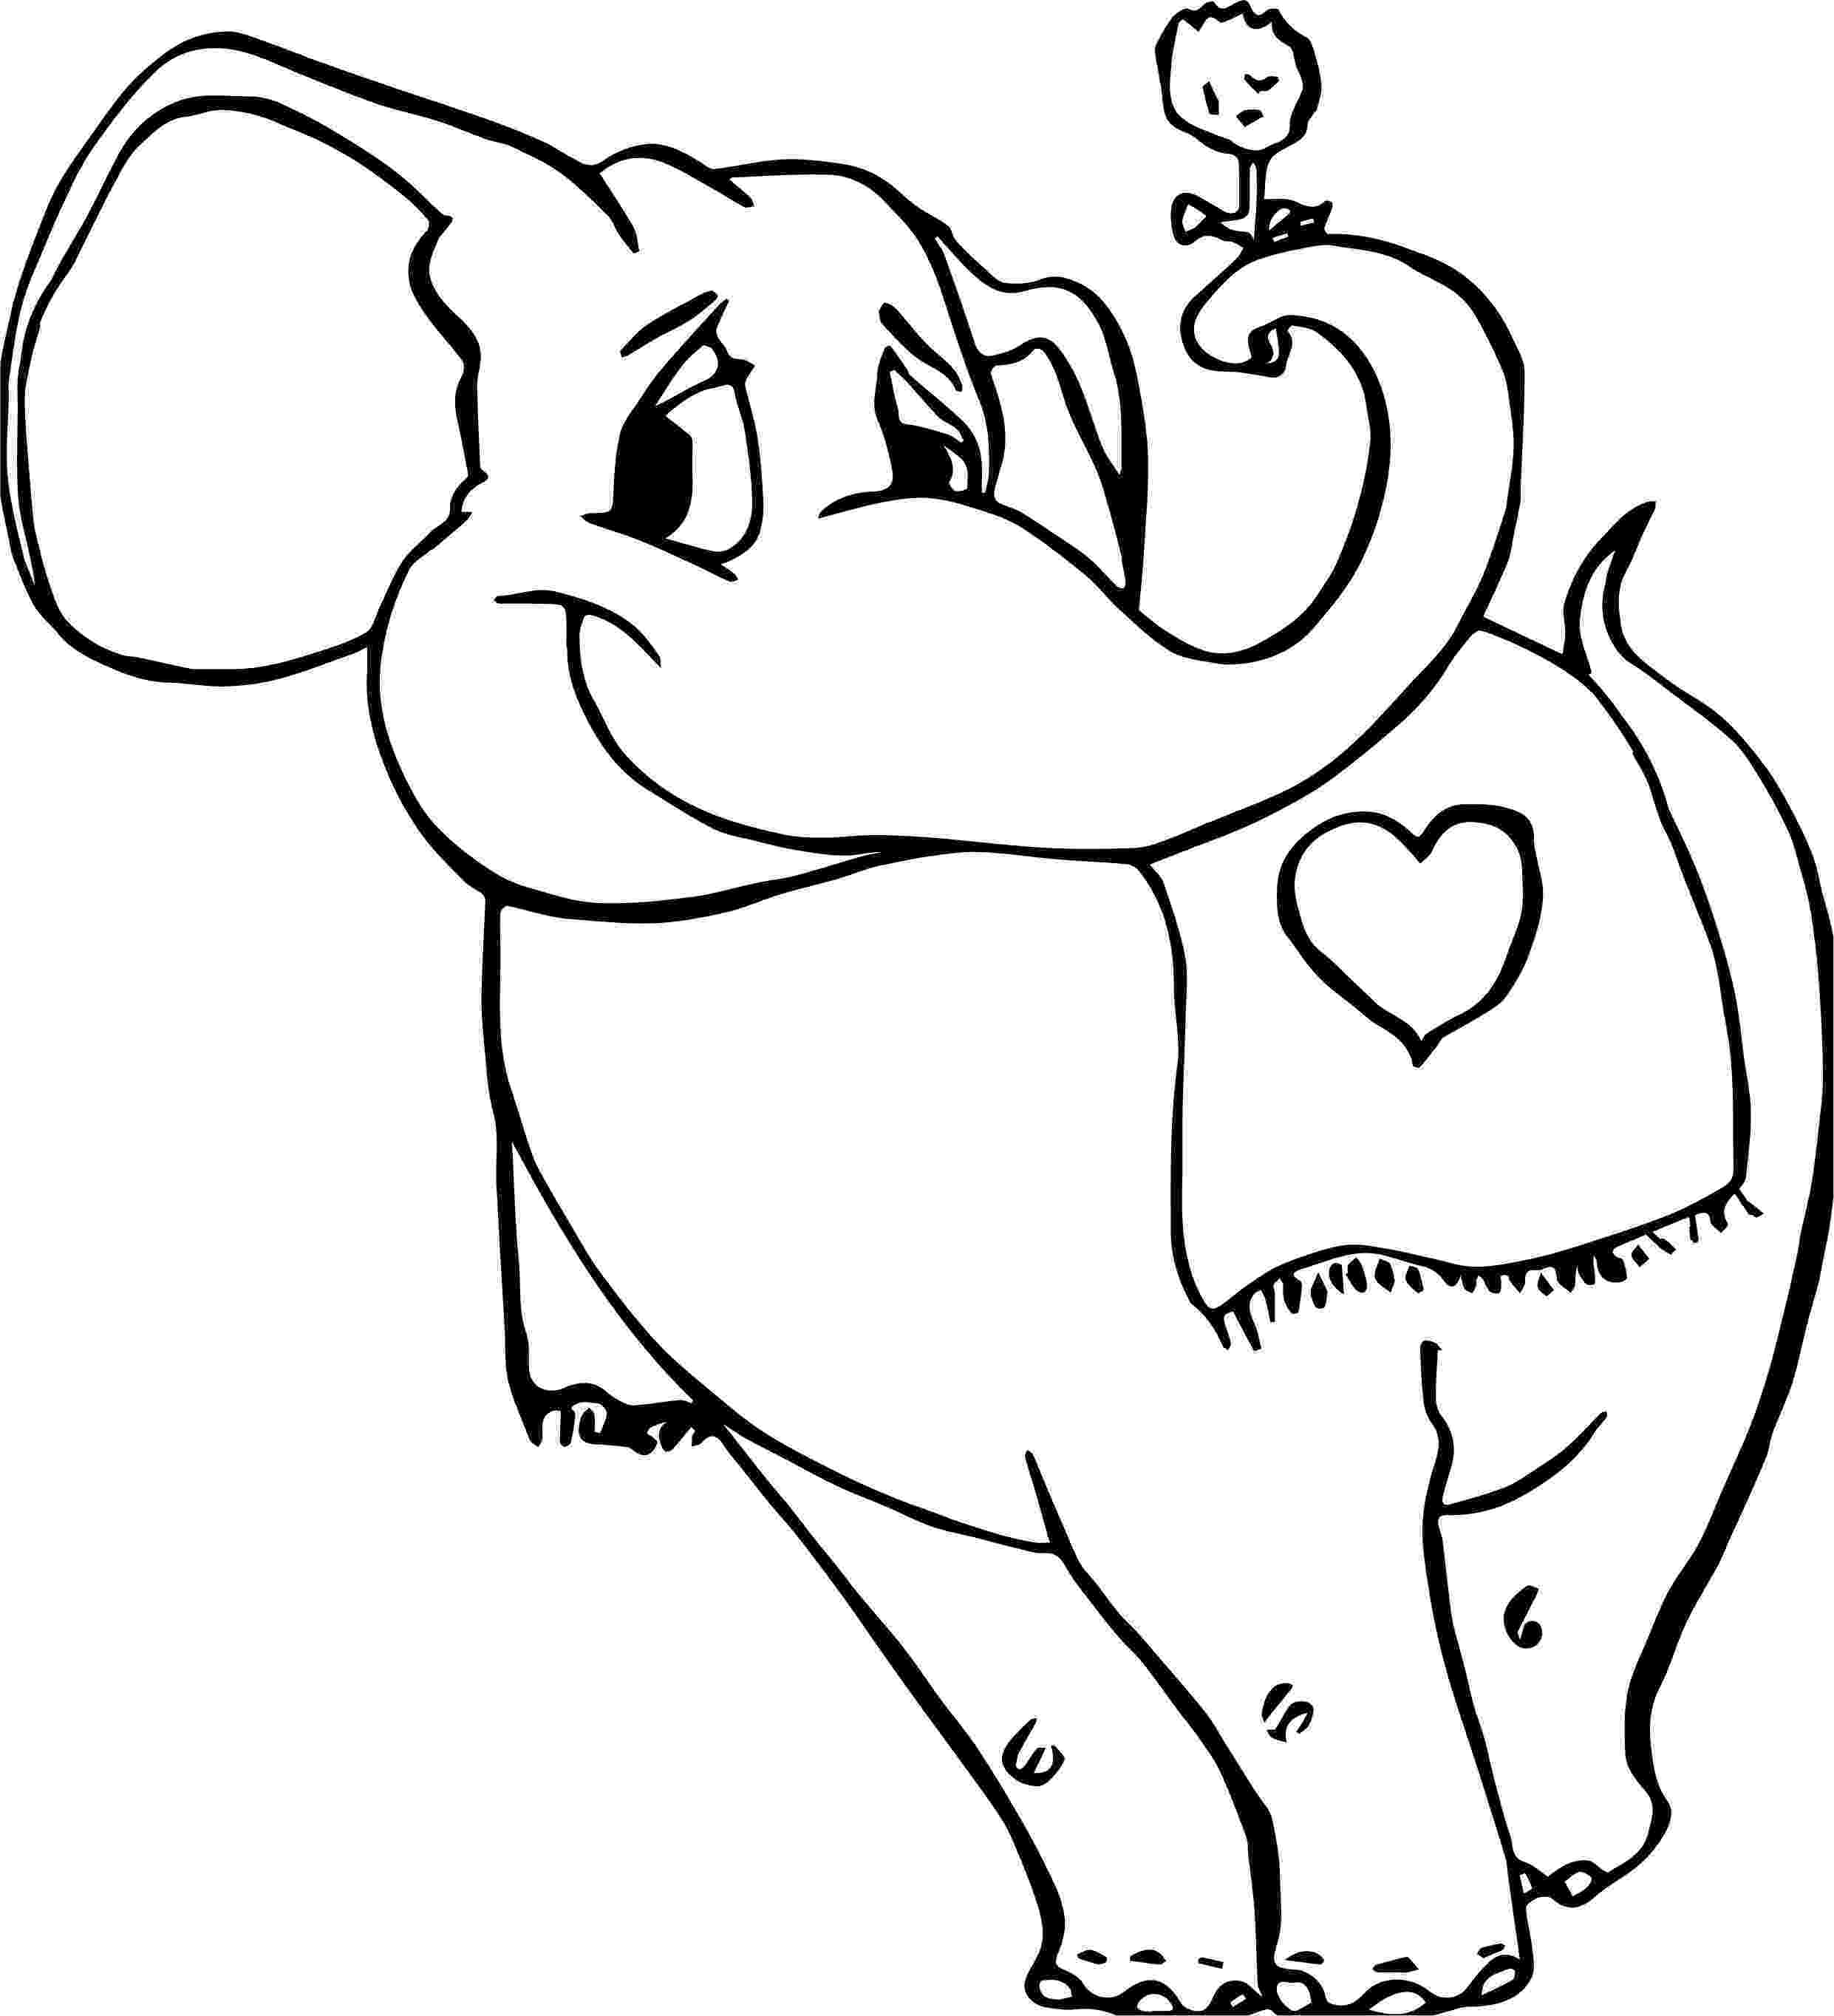 floral elephant coloring page old elephant flower coloring page wecoloringpagecom coloring elephant floral page